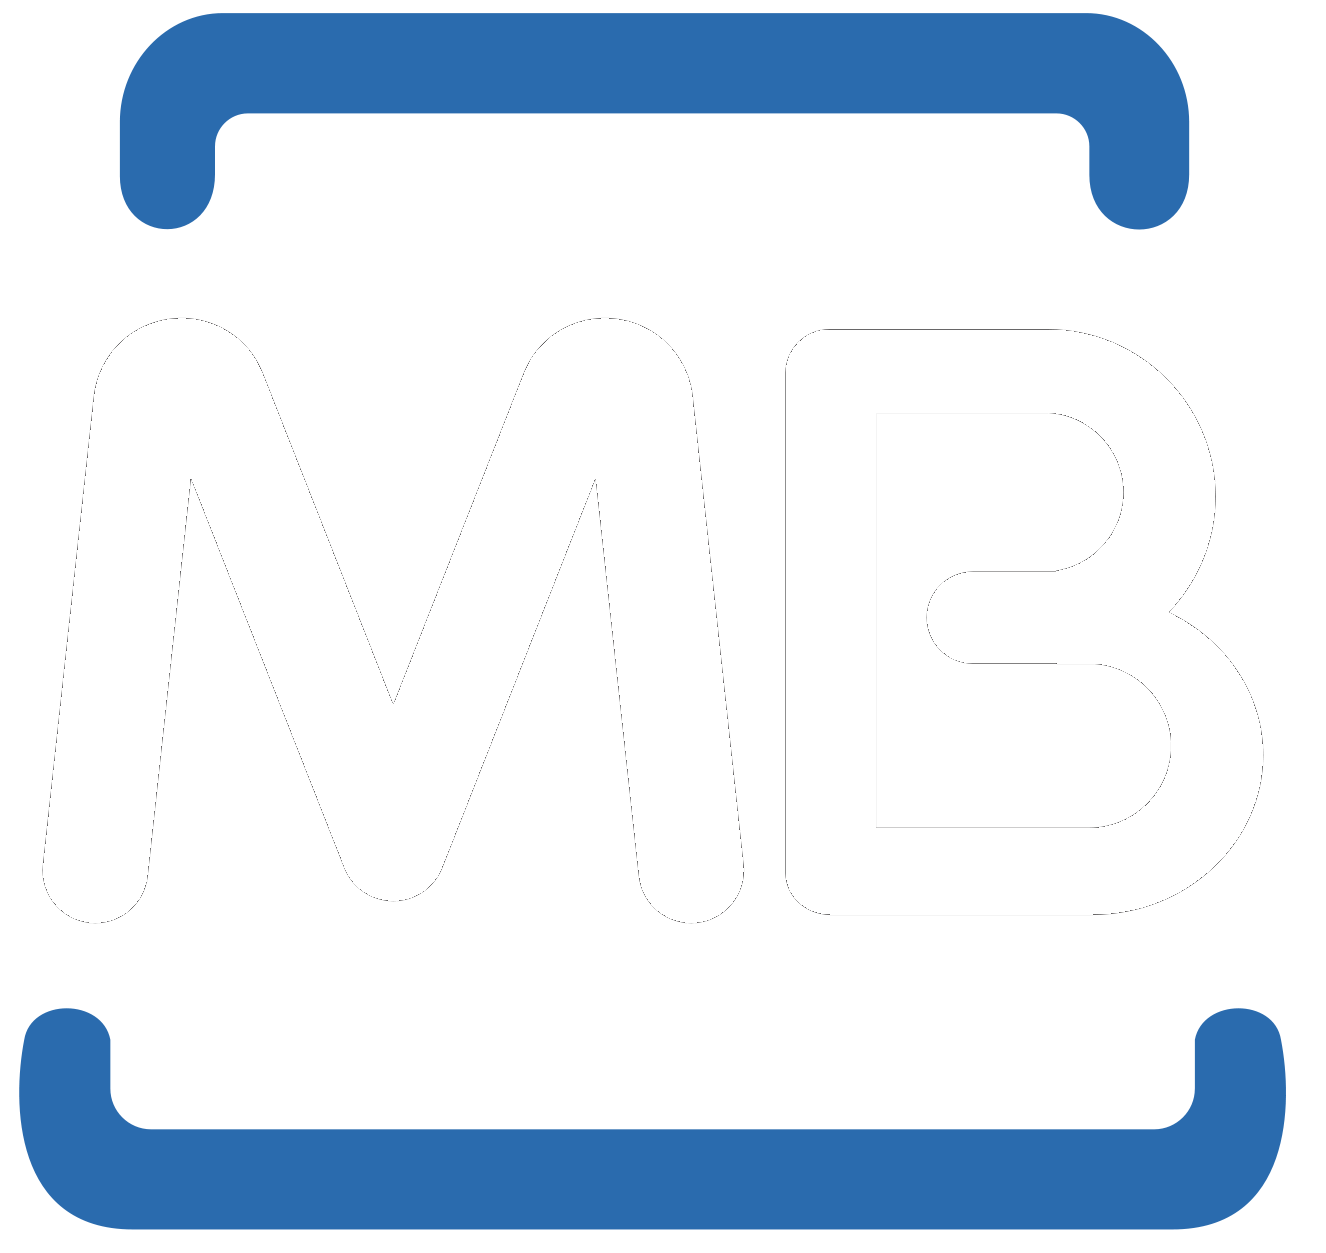 Multibanco logo